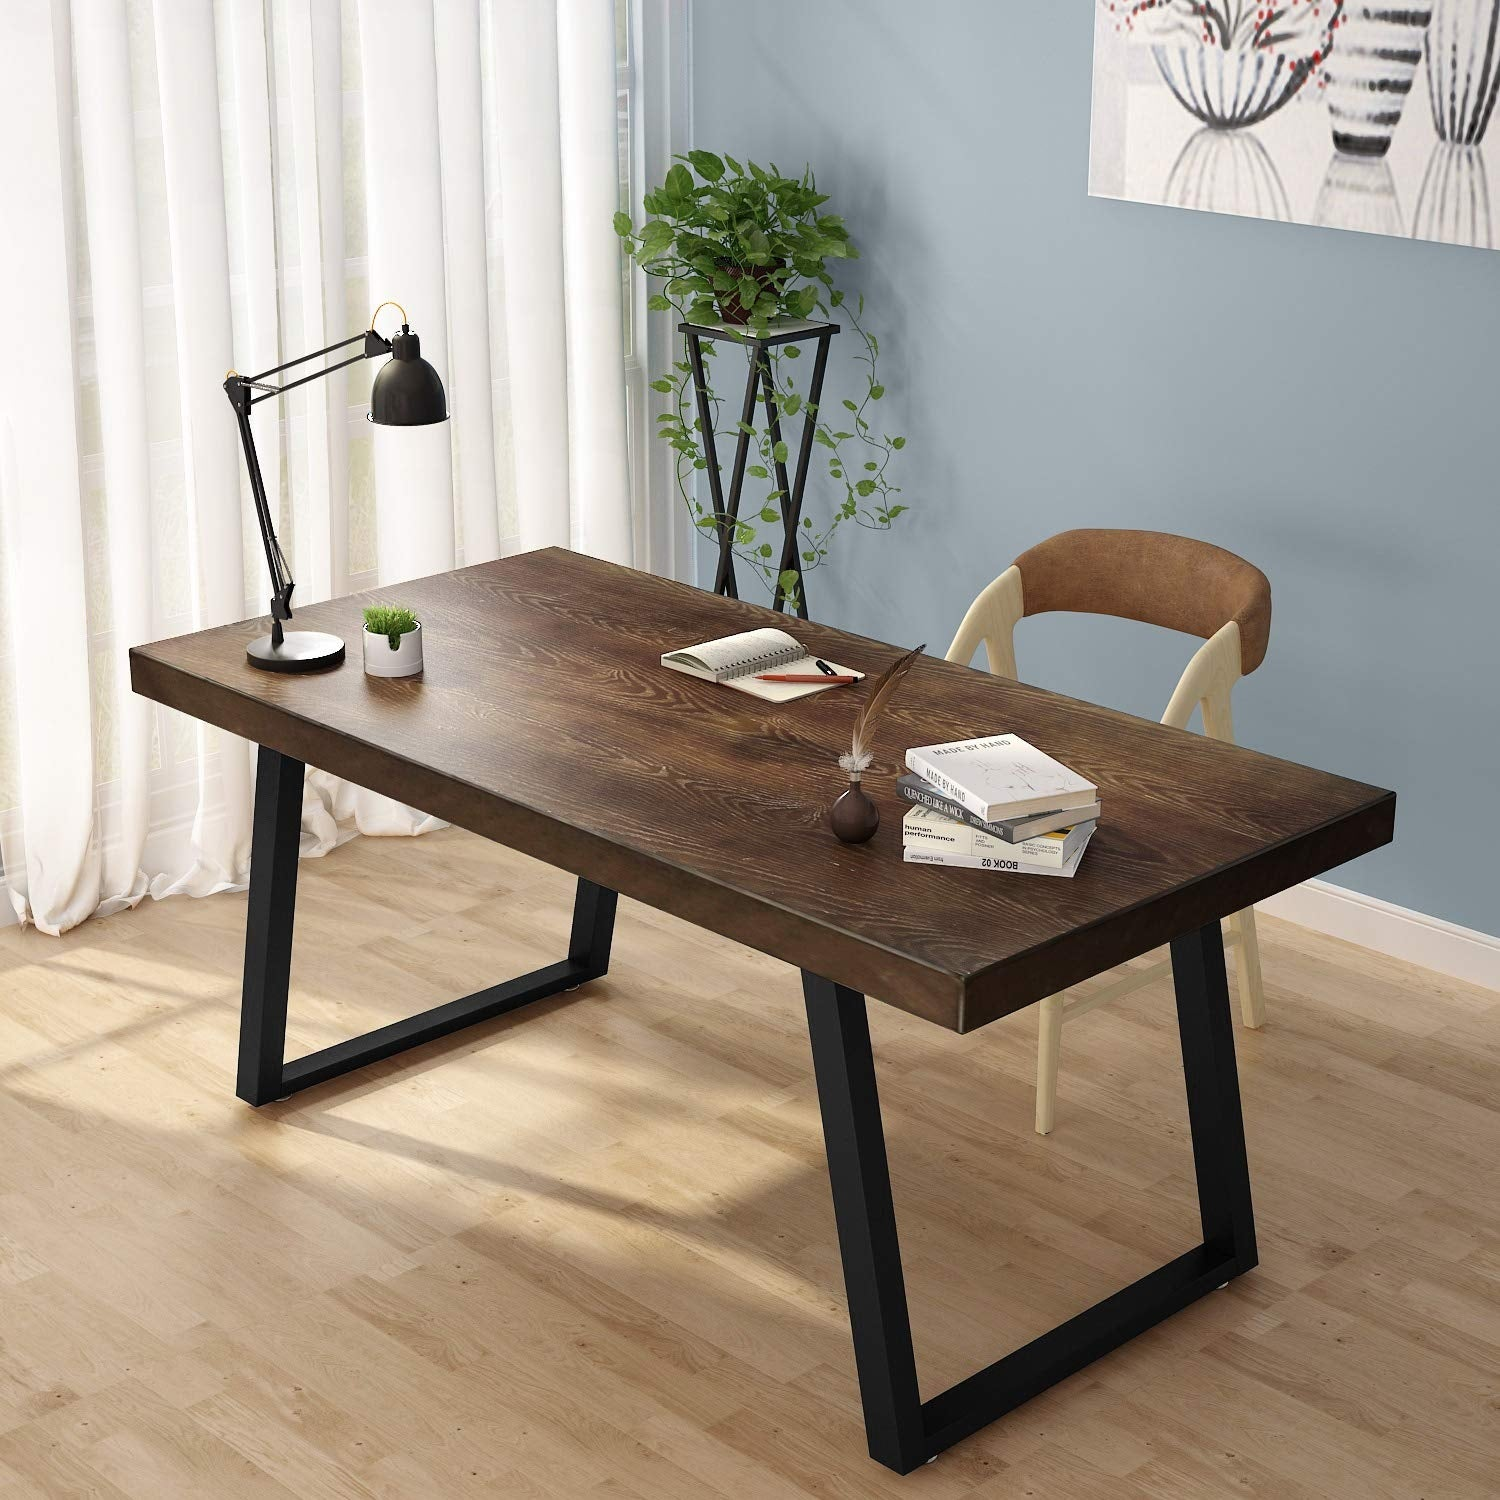 Picture of: 55 Rustic Solid Wood Computer Desk Vintage Industrial Home Office Desk With Heavy Duty Metal Base Overstock 28571294